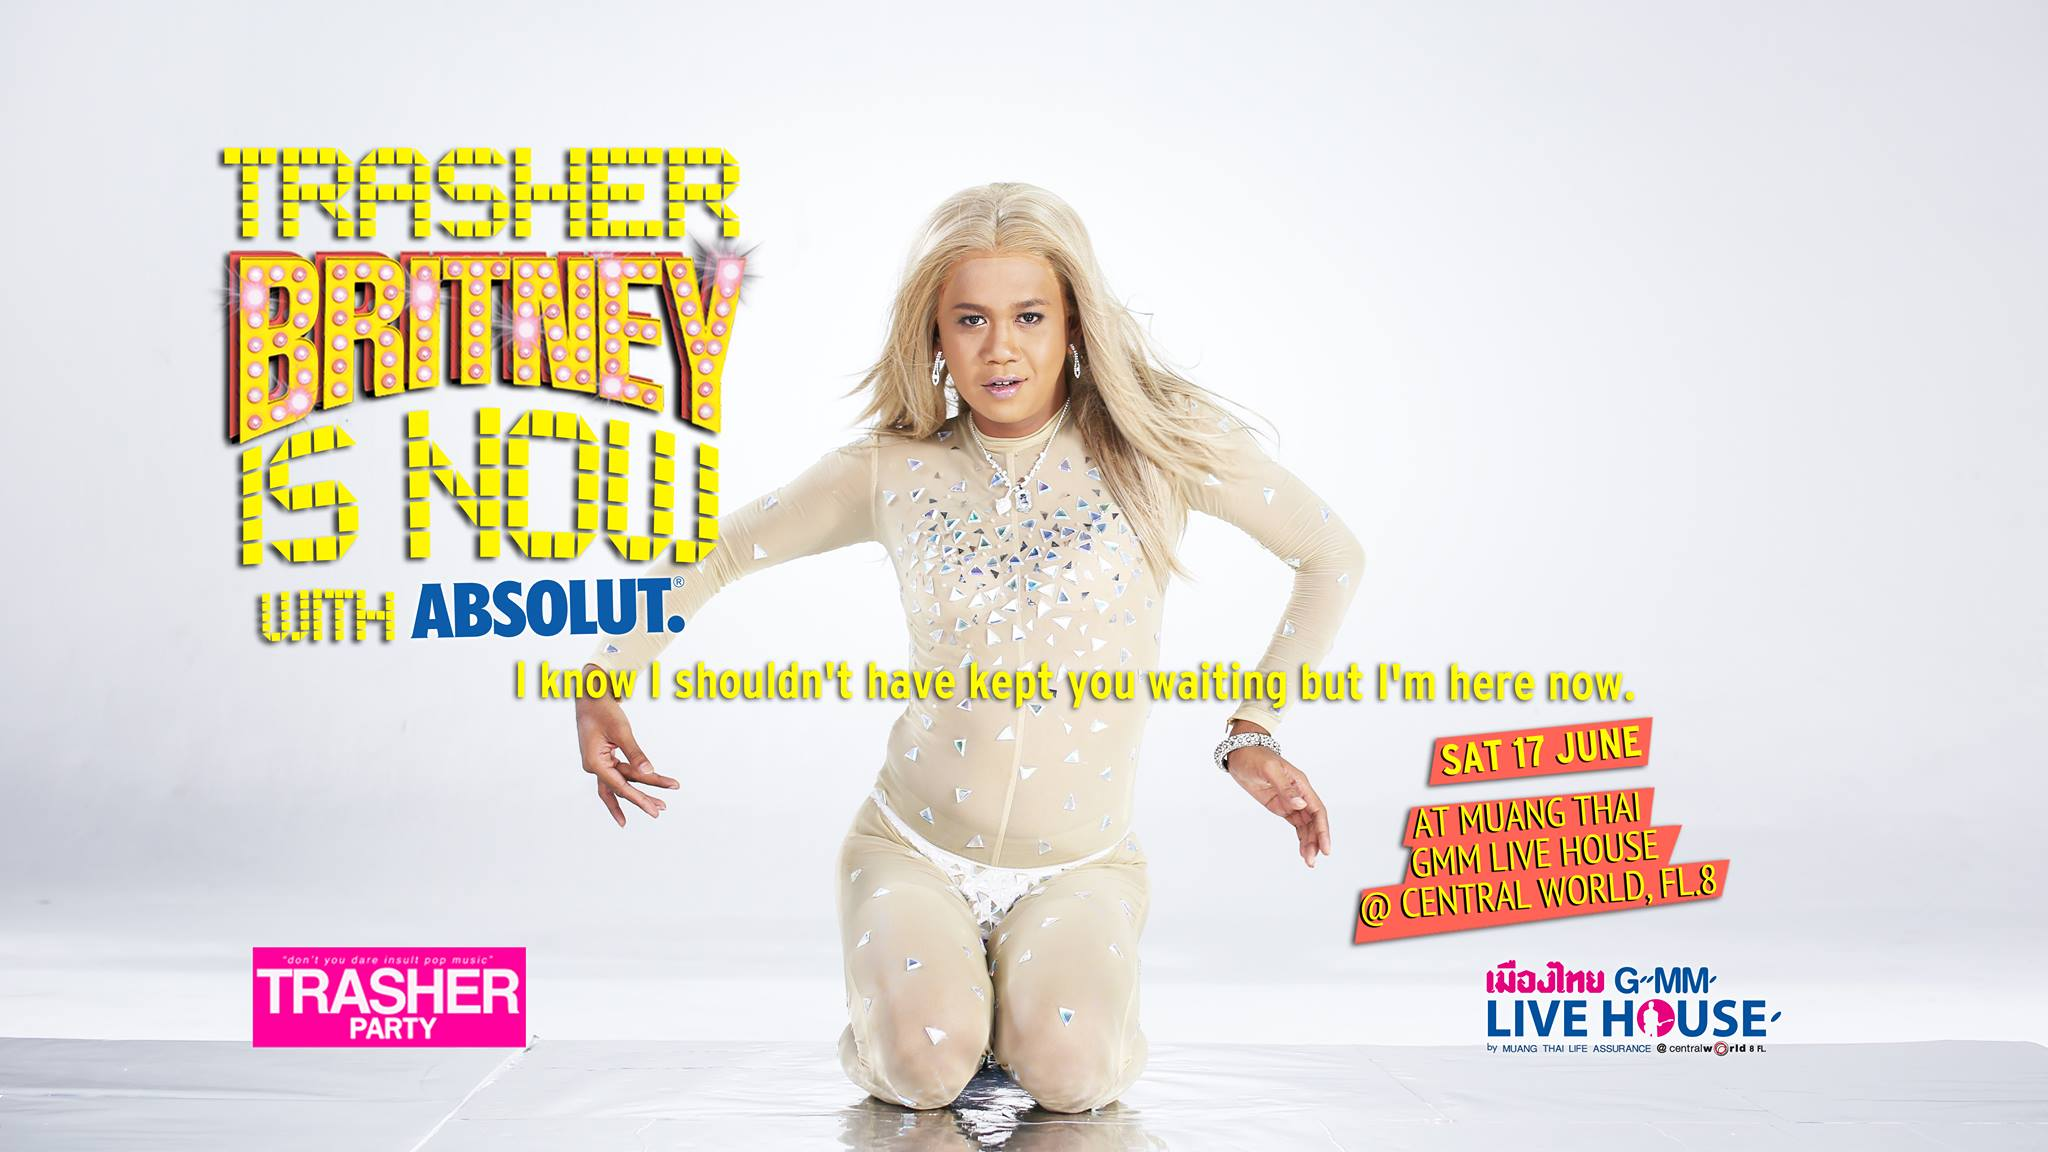 Trasher Britney Is Now with ABSOLUT